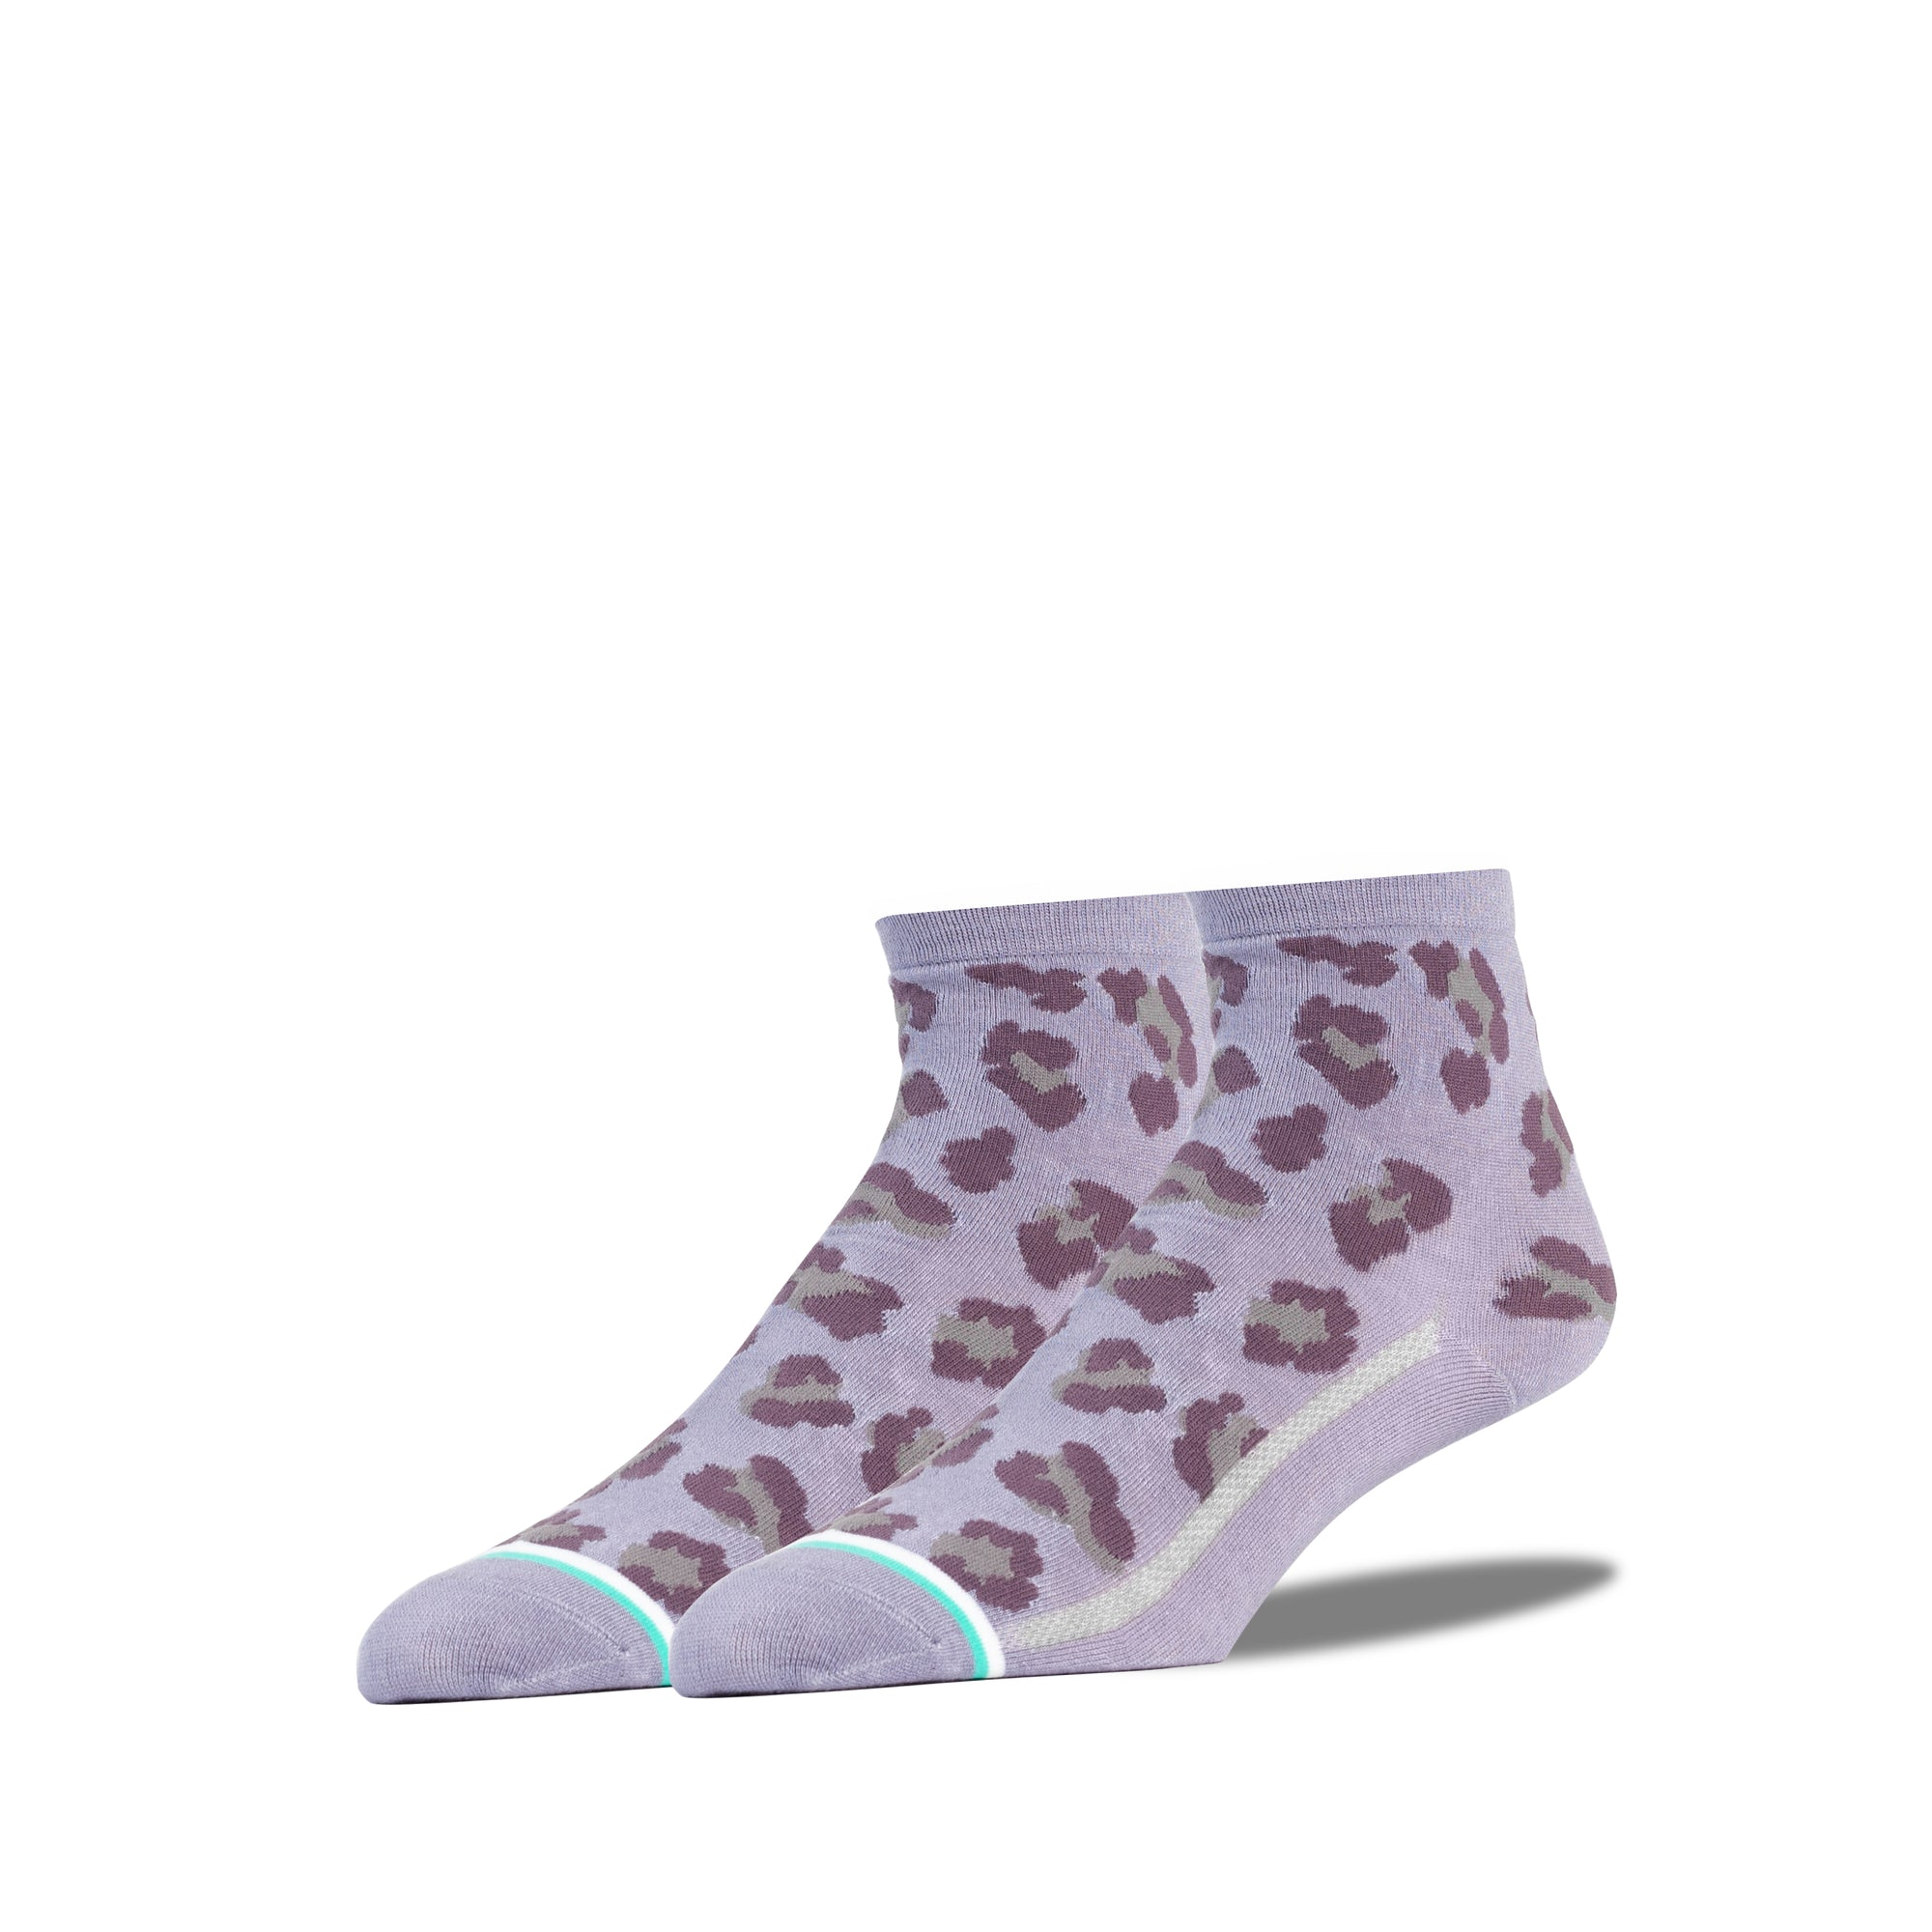 Lavender Ankle Cut Socks